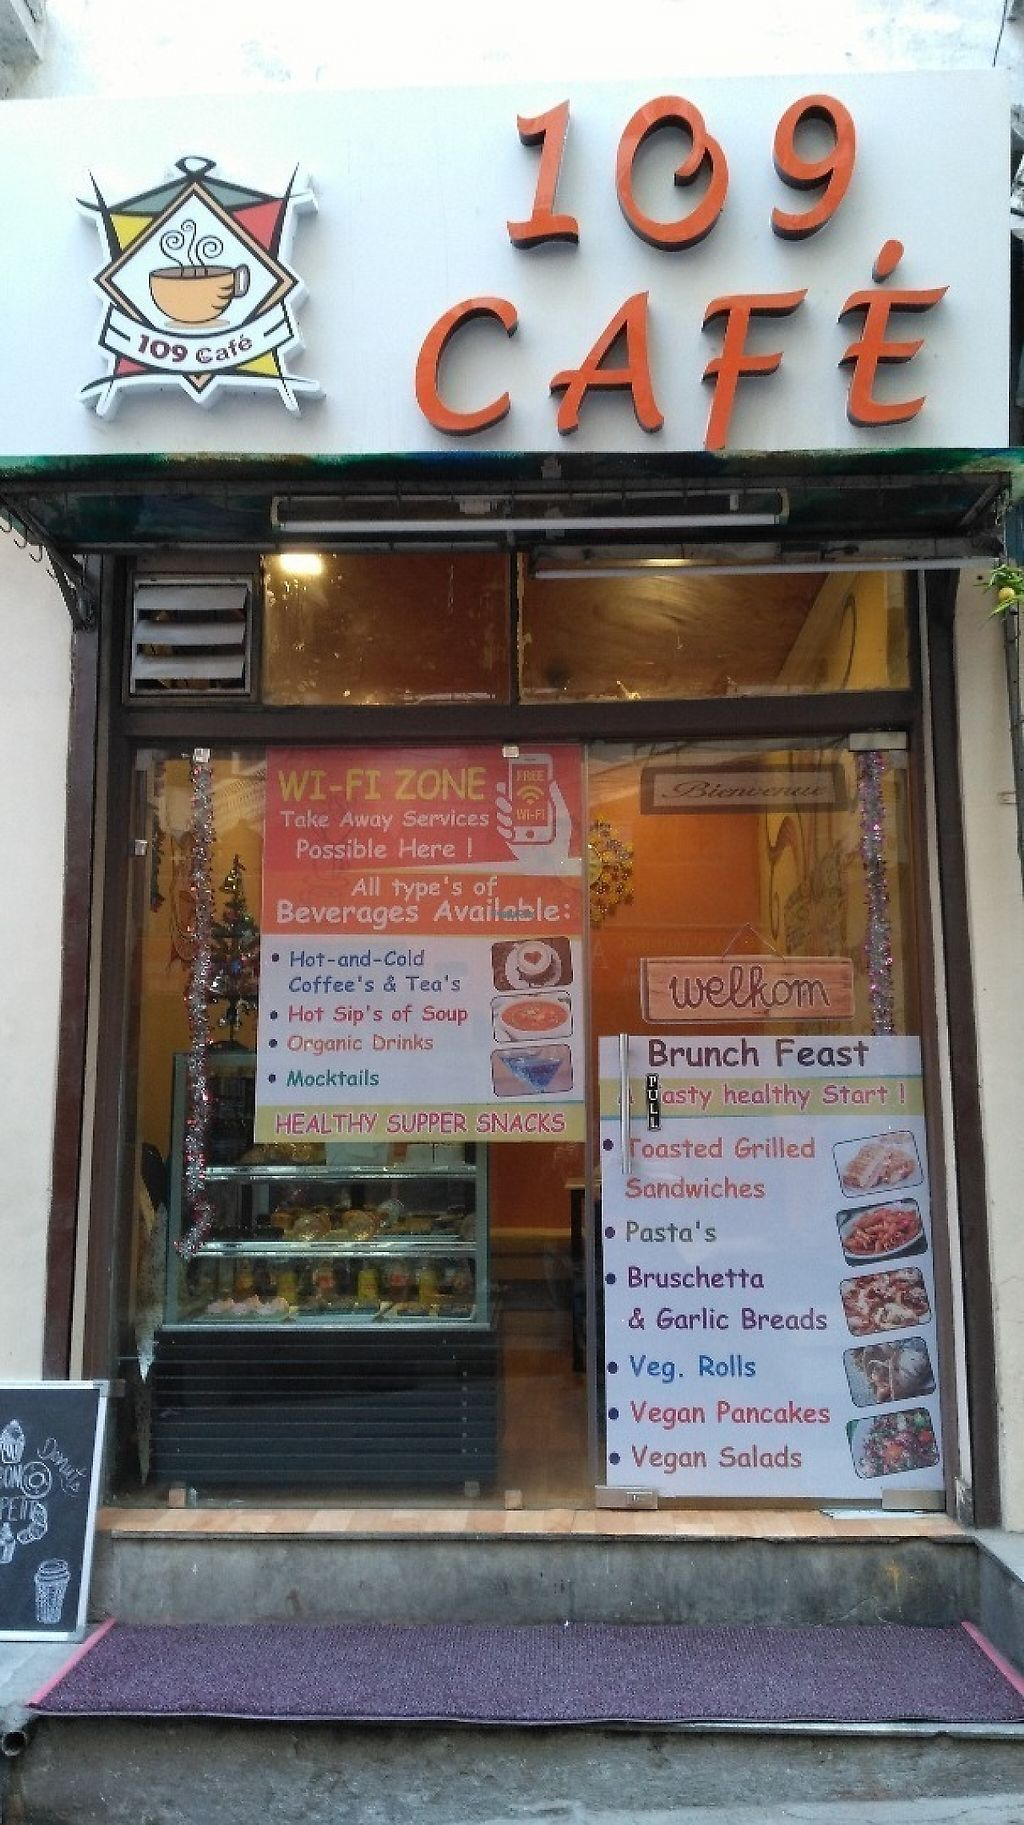 """Photo of 1o9 Cafe  by <a href=""""/members/profile/Gilogie"""">Gilogie</a> <br/>Entrance <br/> January 2, 2017  - <a href='/contact/abuse/image/84814/207086'>Report</a>"""